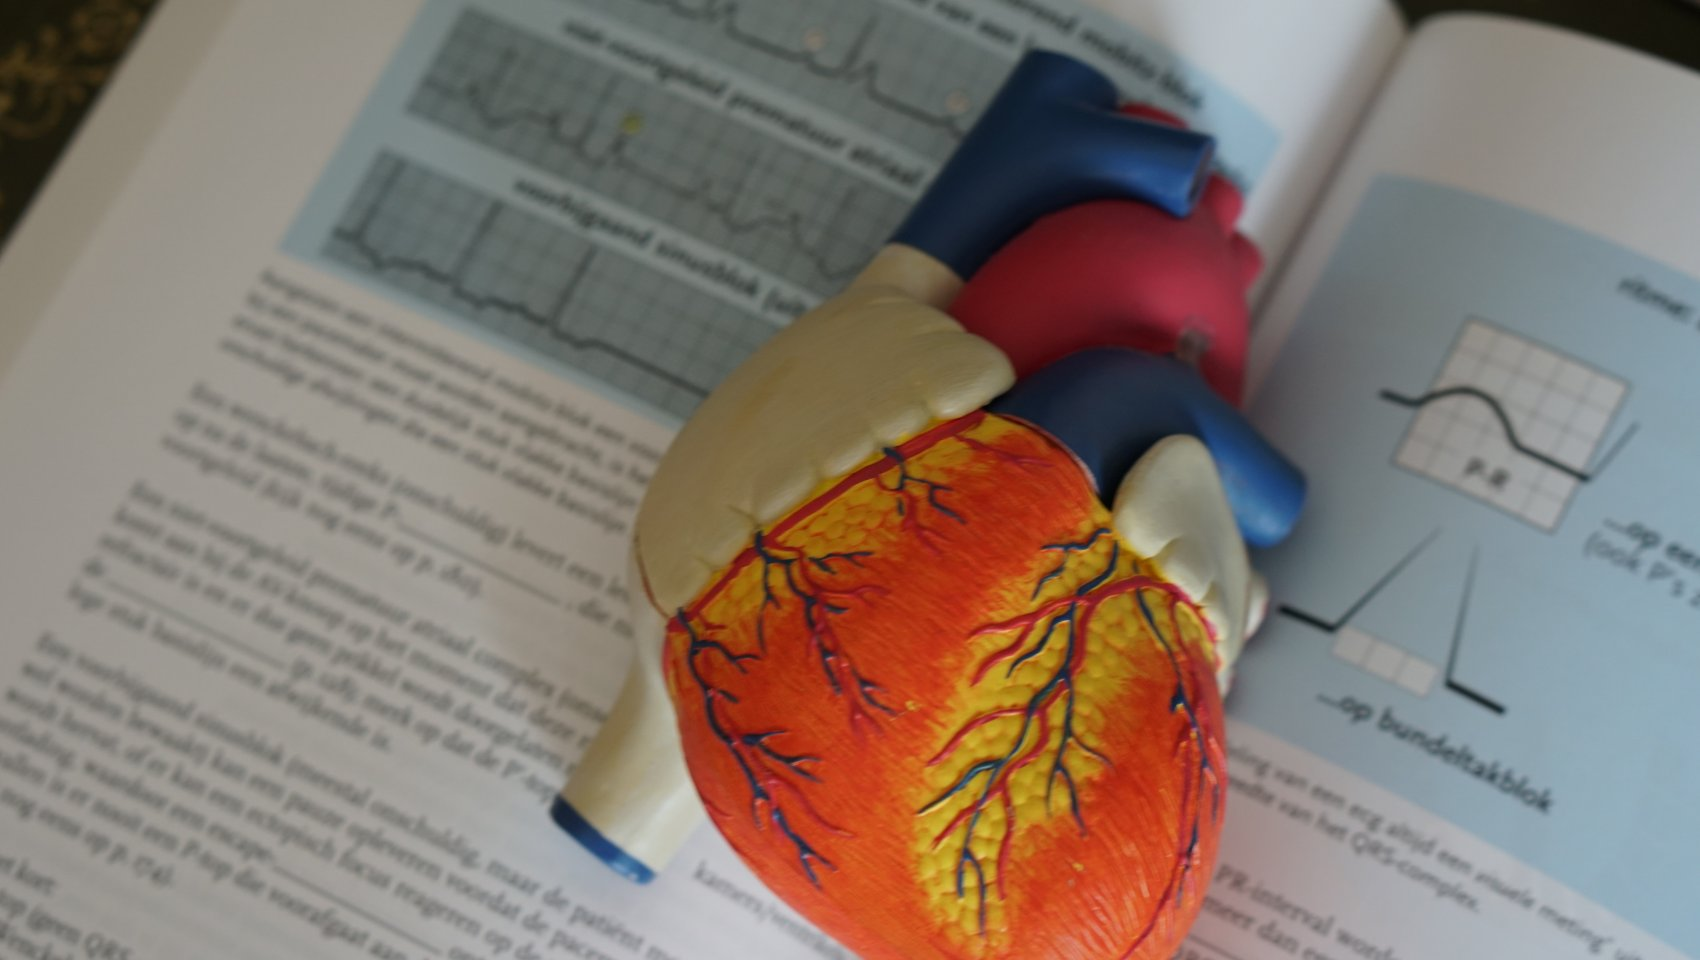 Model of human heart with textbook